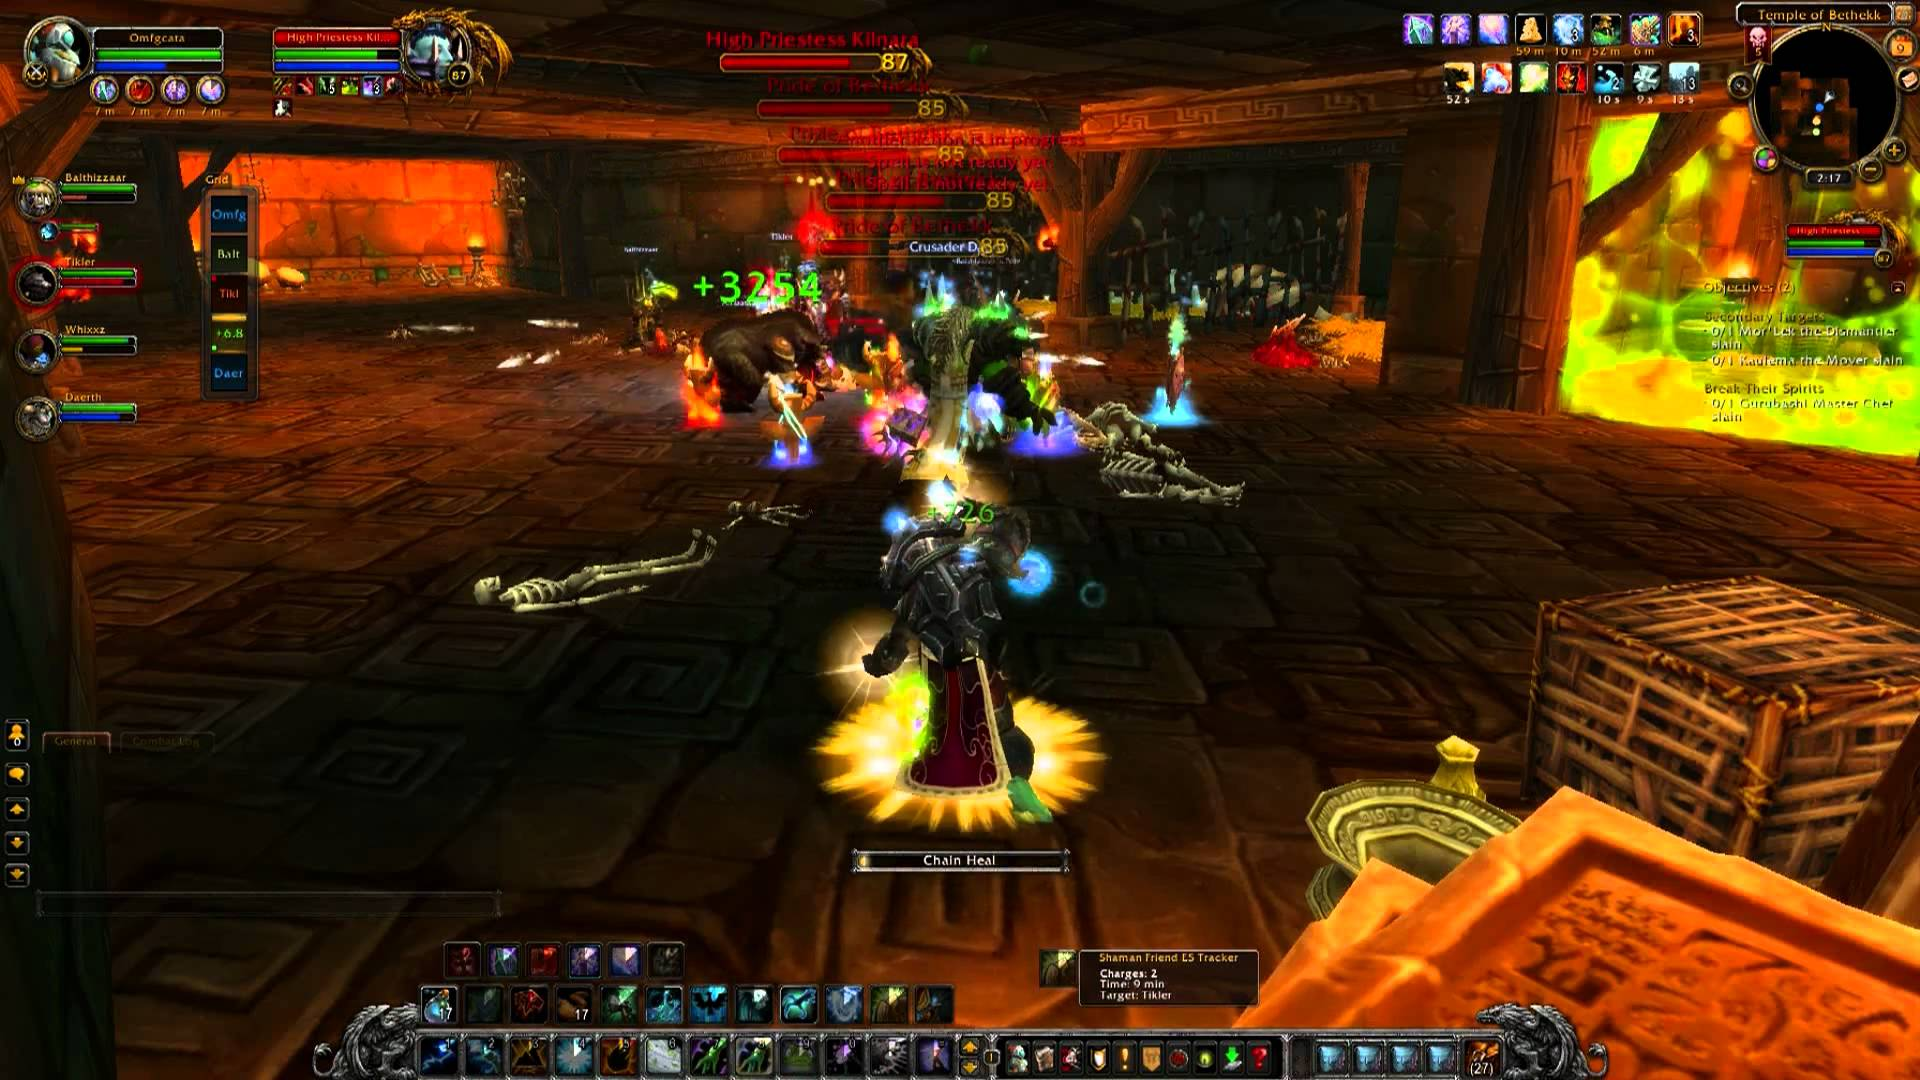 Gu a de zul 39 gurub heroico cataclysm mazmorras gu as wow for Cocina wow legion